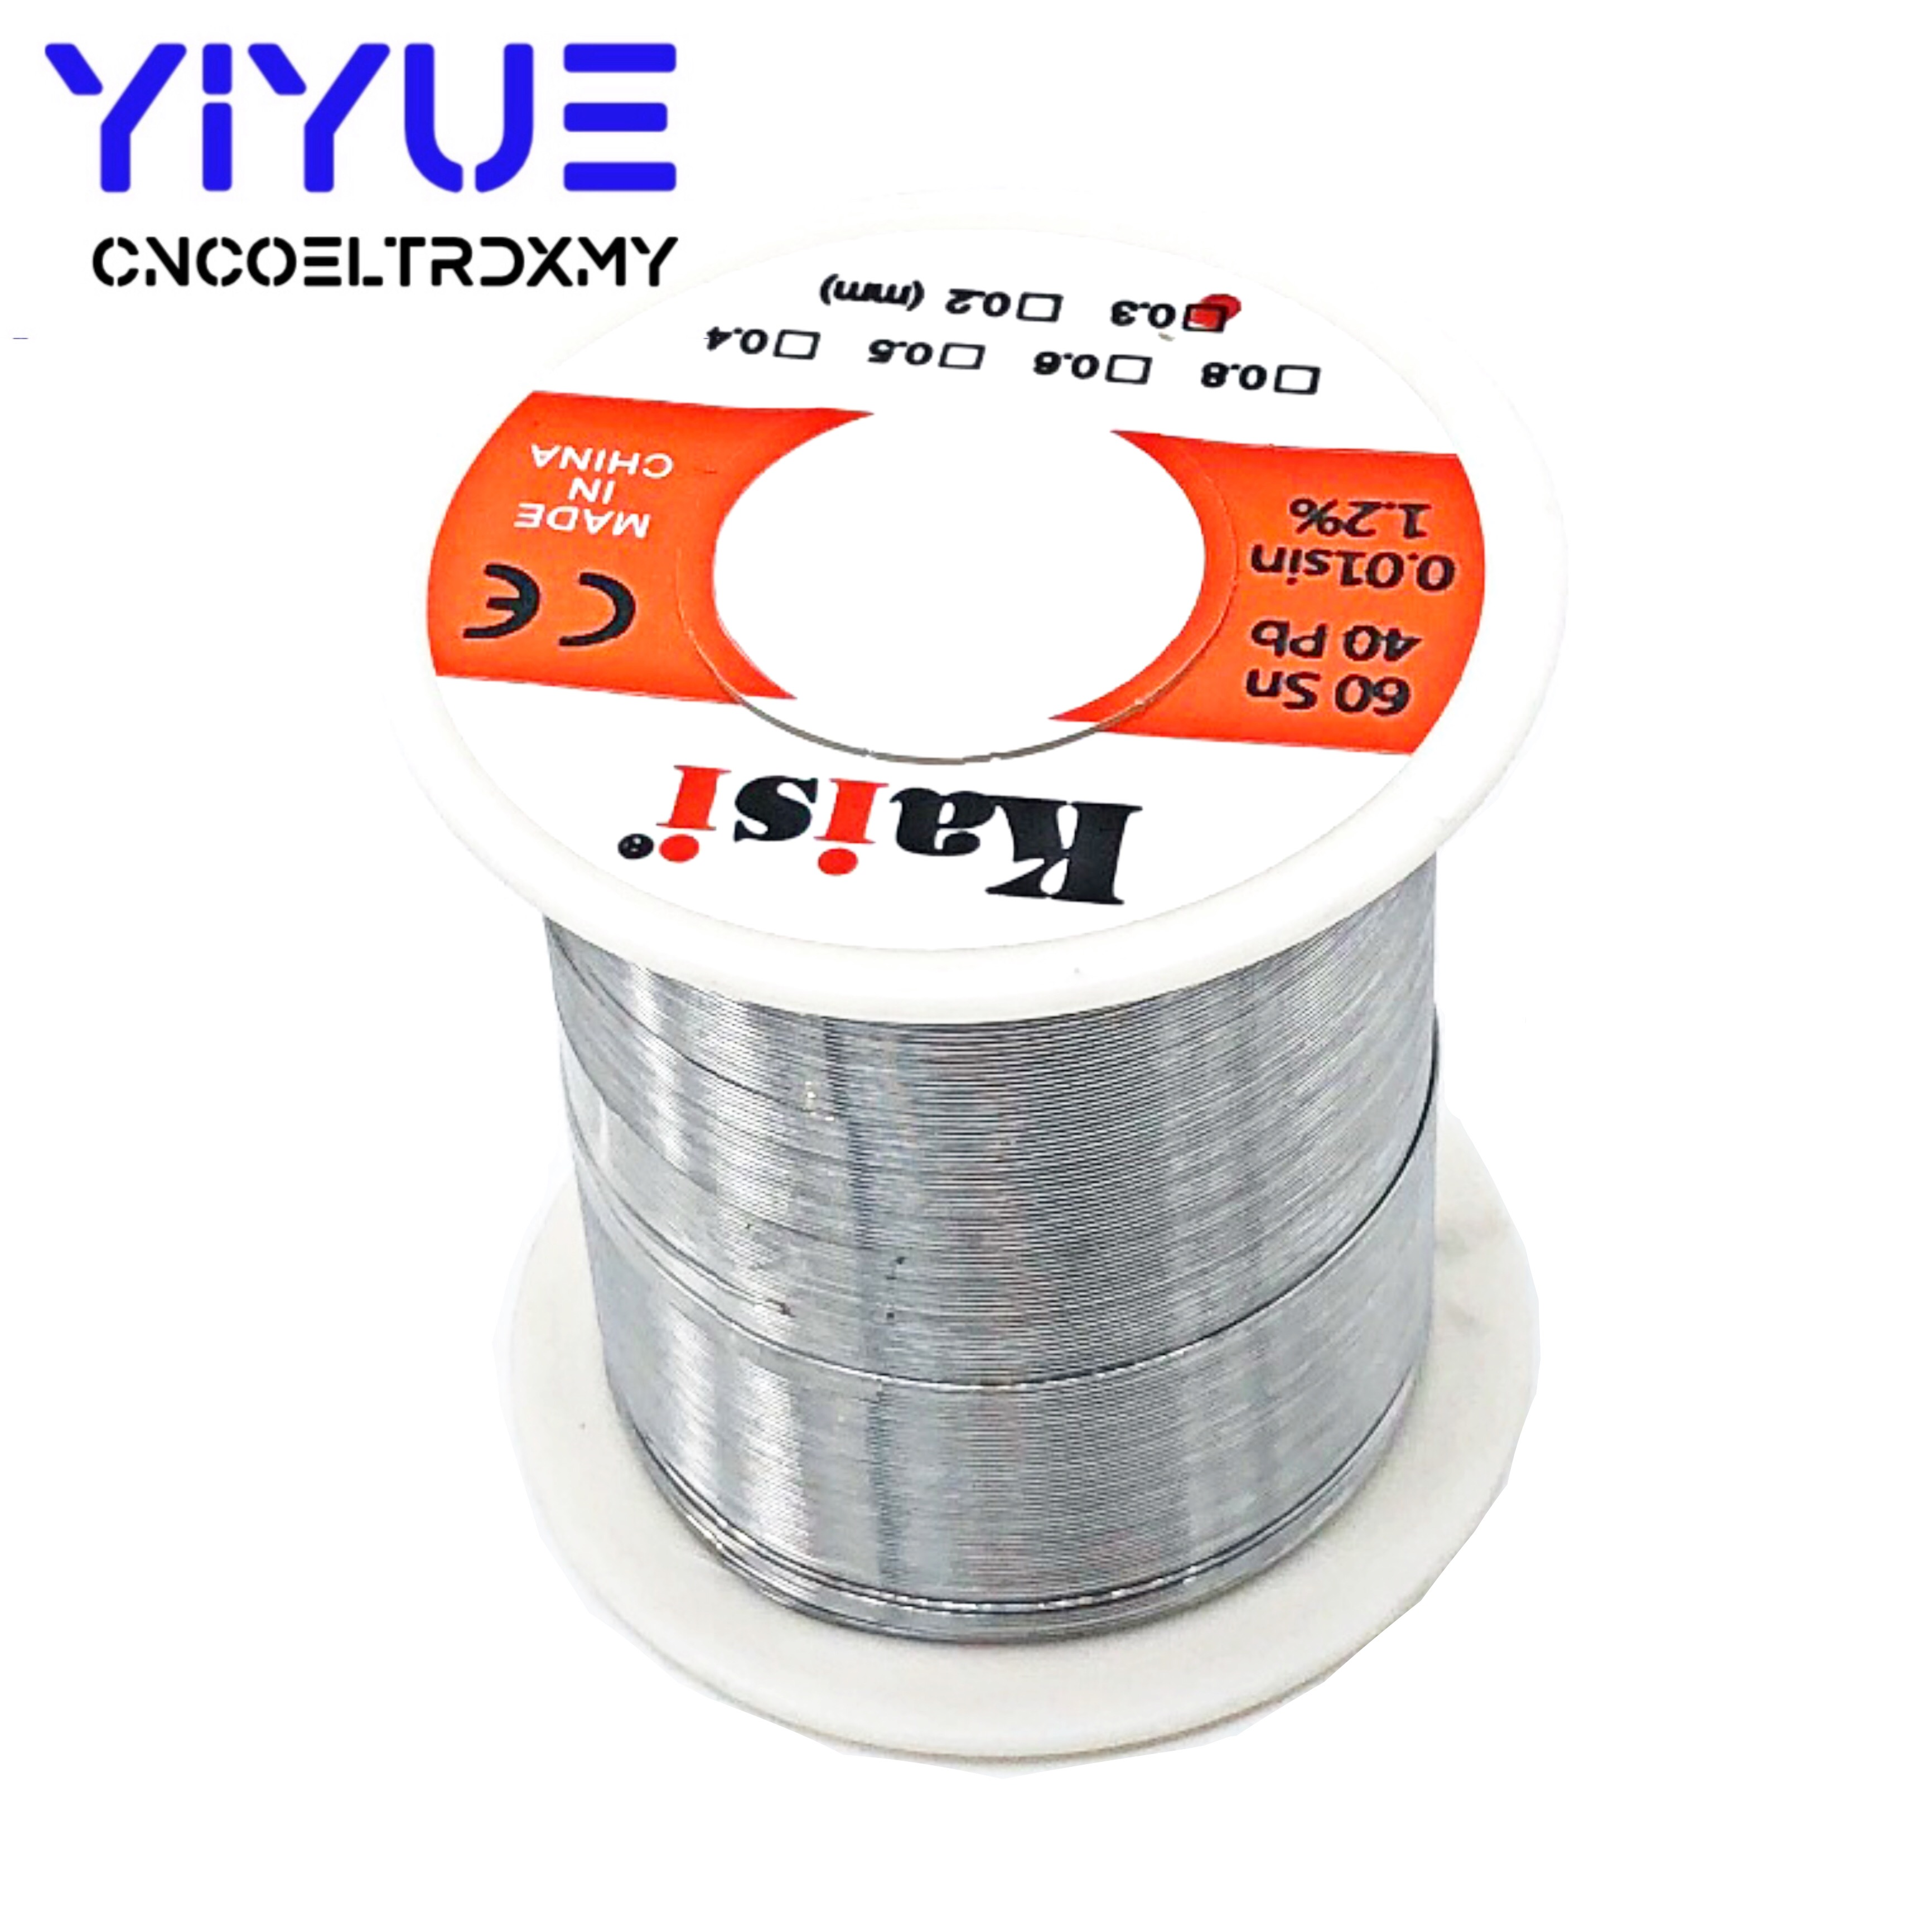 0.3mm/0.4mm/0.5mm/0.6mm 150g Flux 1.2% Rosin Core Tin Lead Solder Wire Sn60 / Pb40 For Welding Works